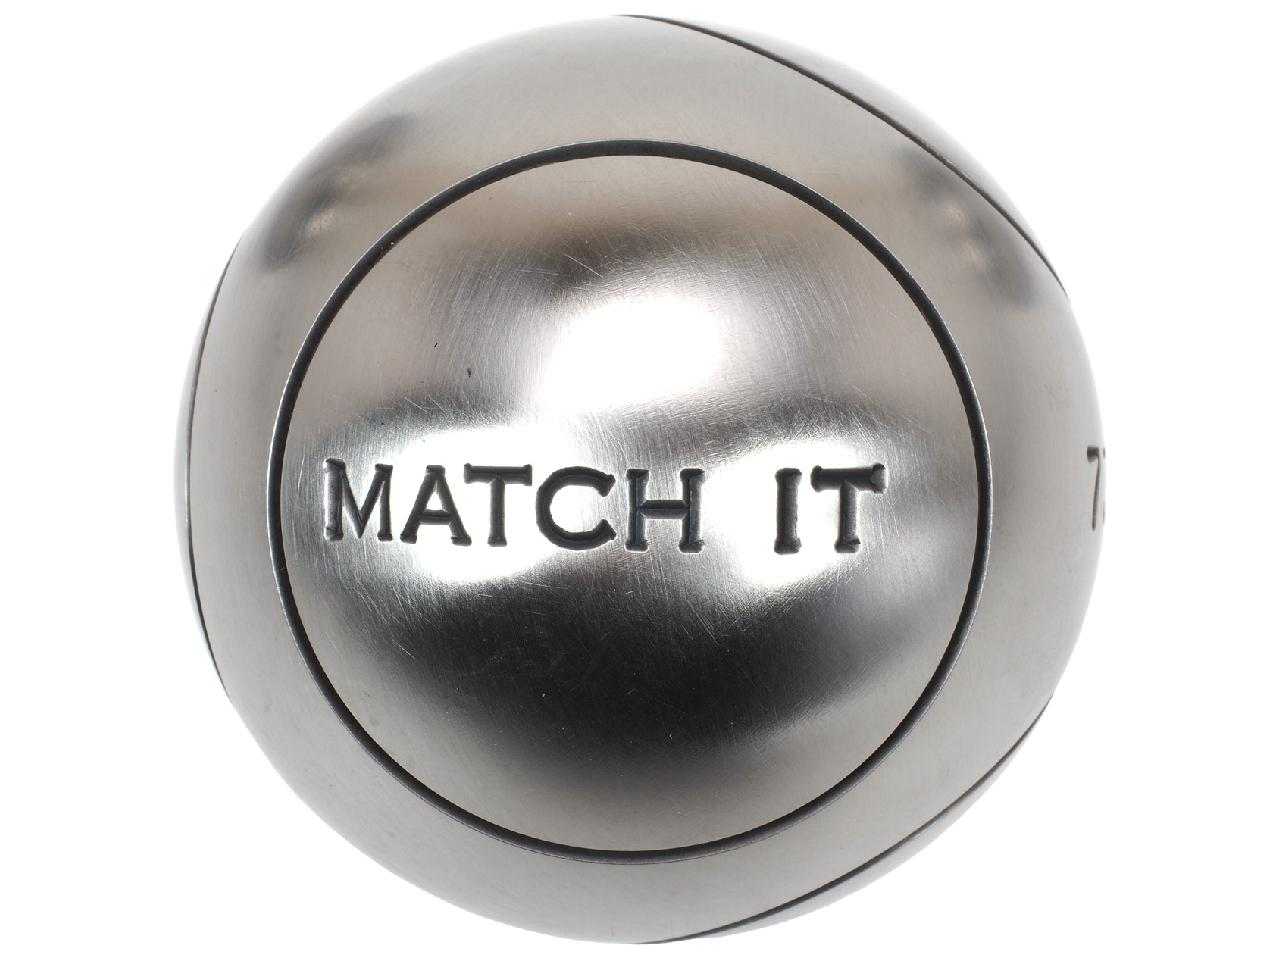 Boules-de-petanque-Obut-Match-it-inox-73mm-strie1-Gris-57625-Neuf miniature 5